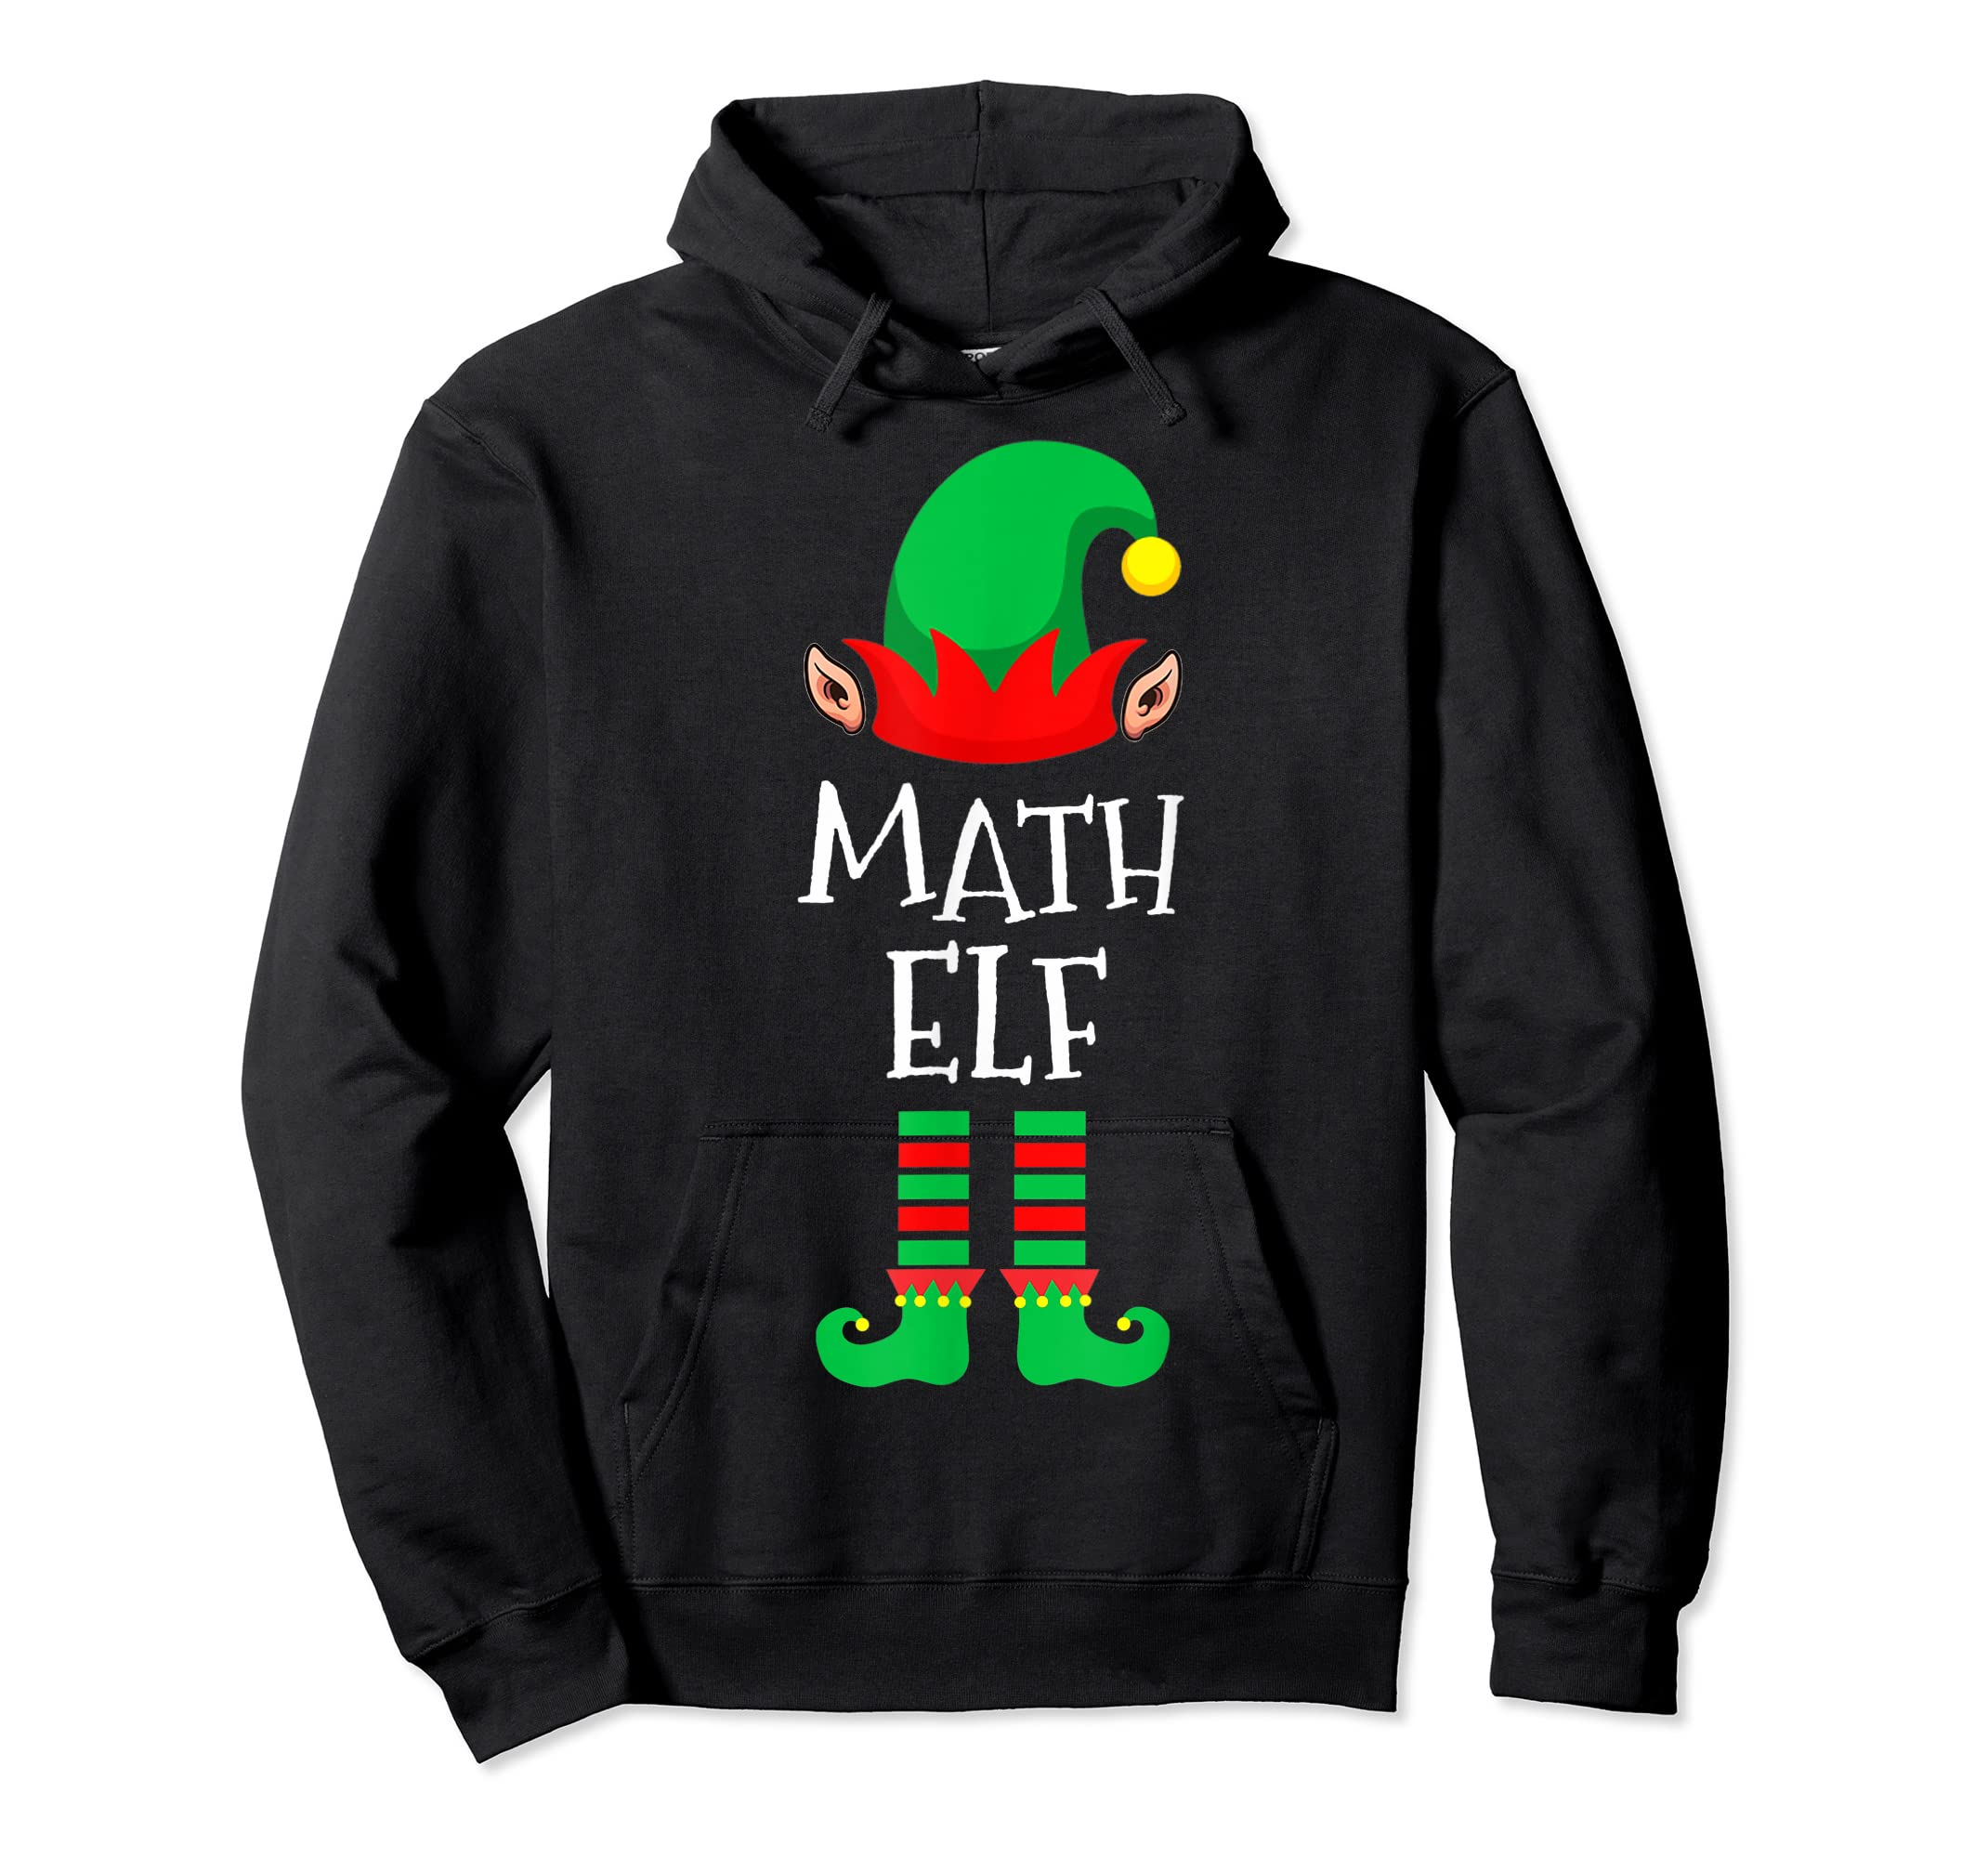 Math Elf - Funny School Teacher Christmas T-Shirt-Hoodie-Black